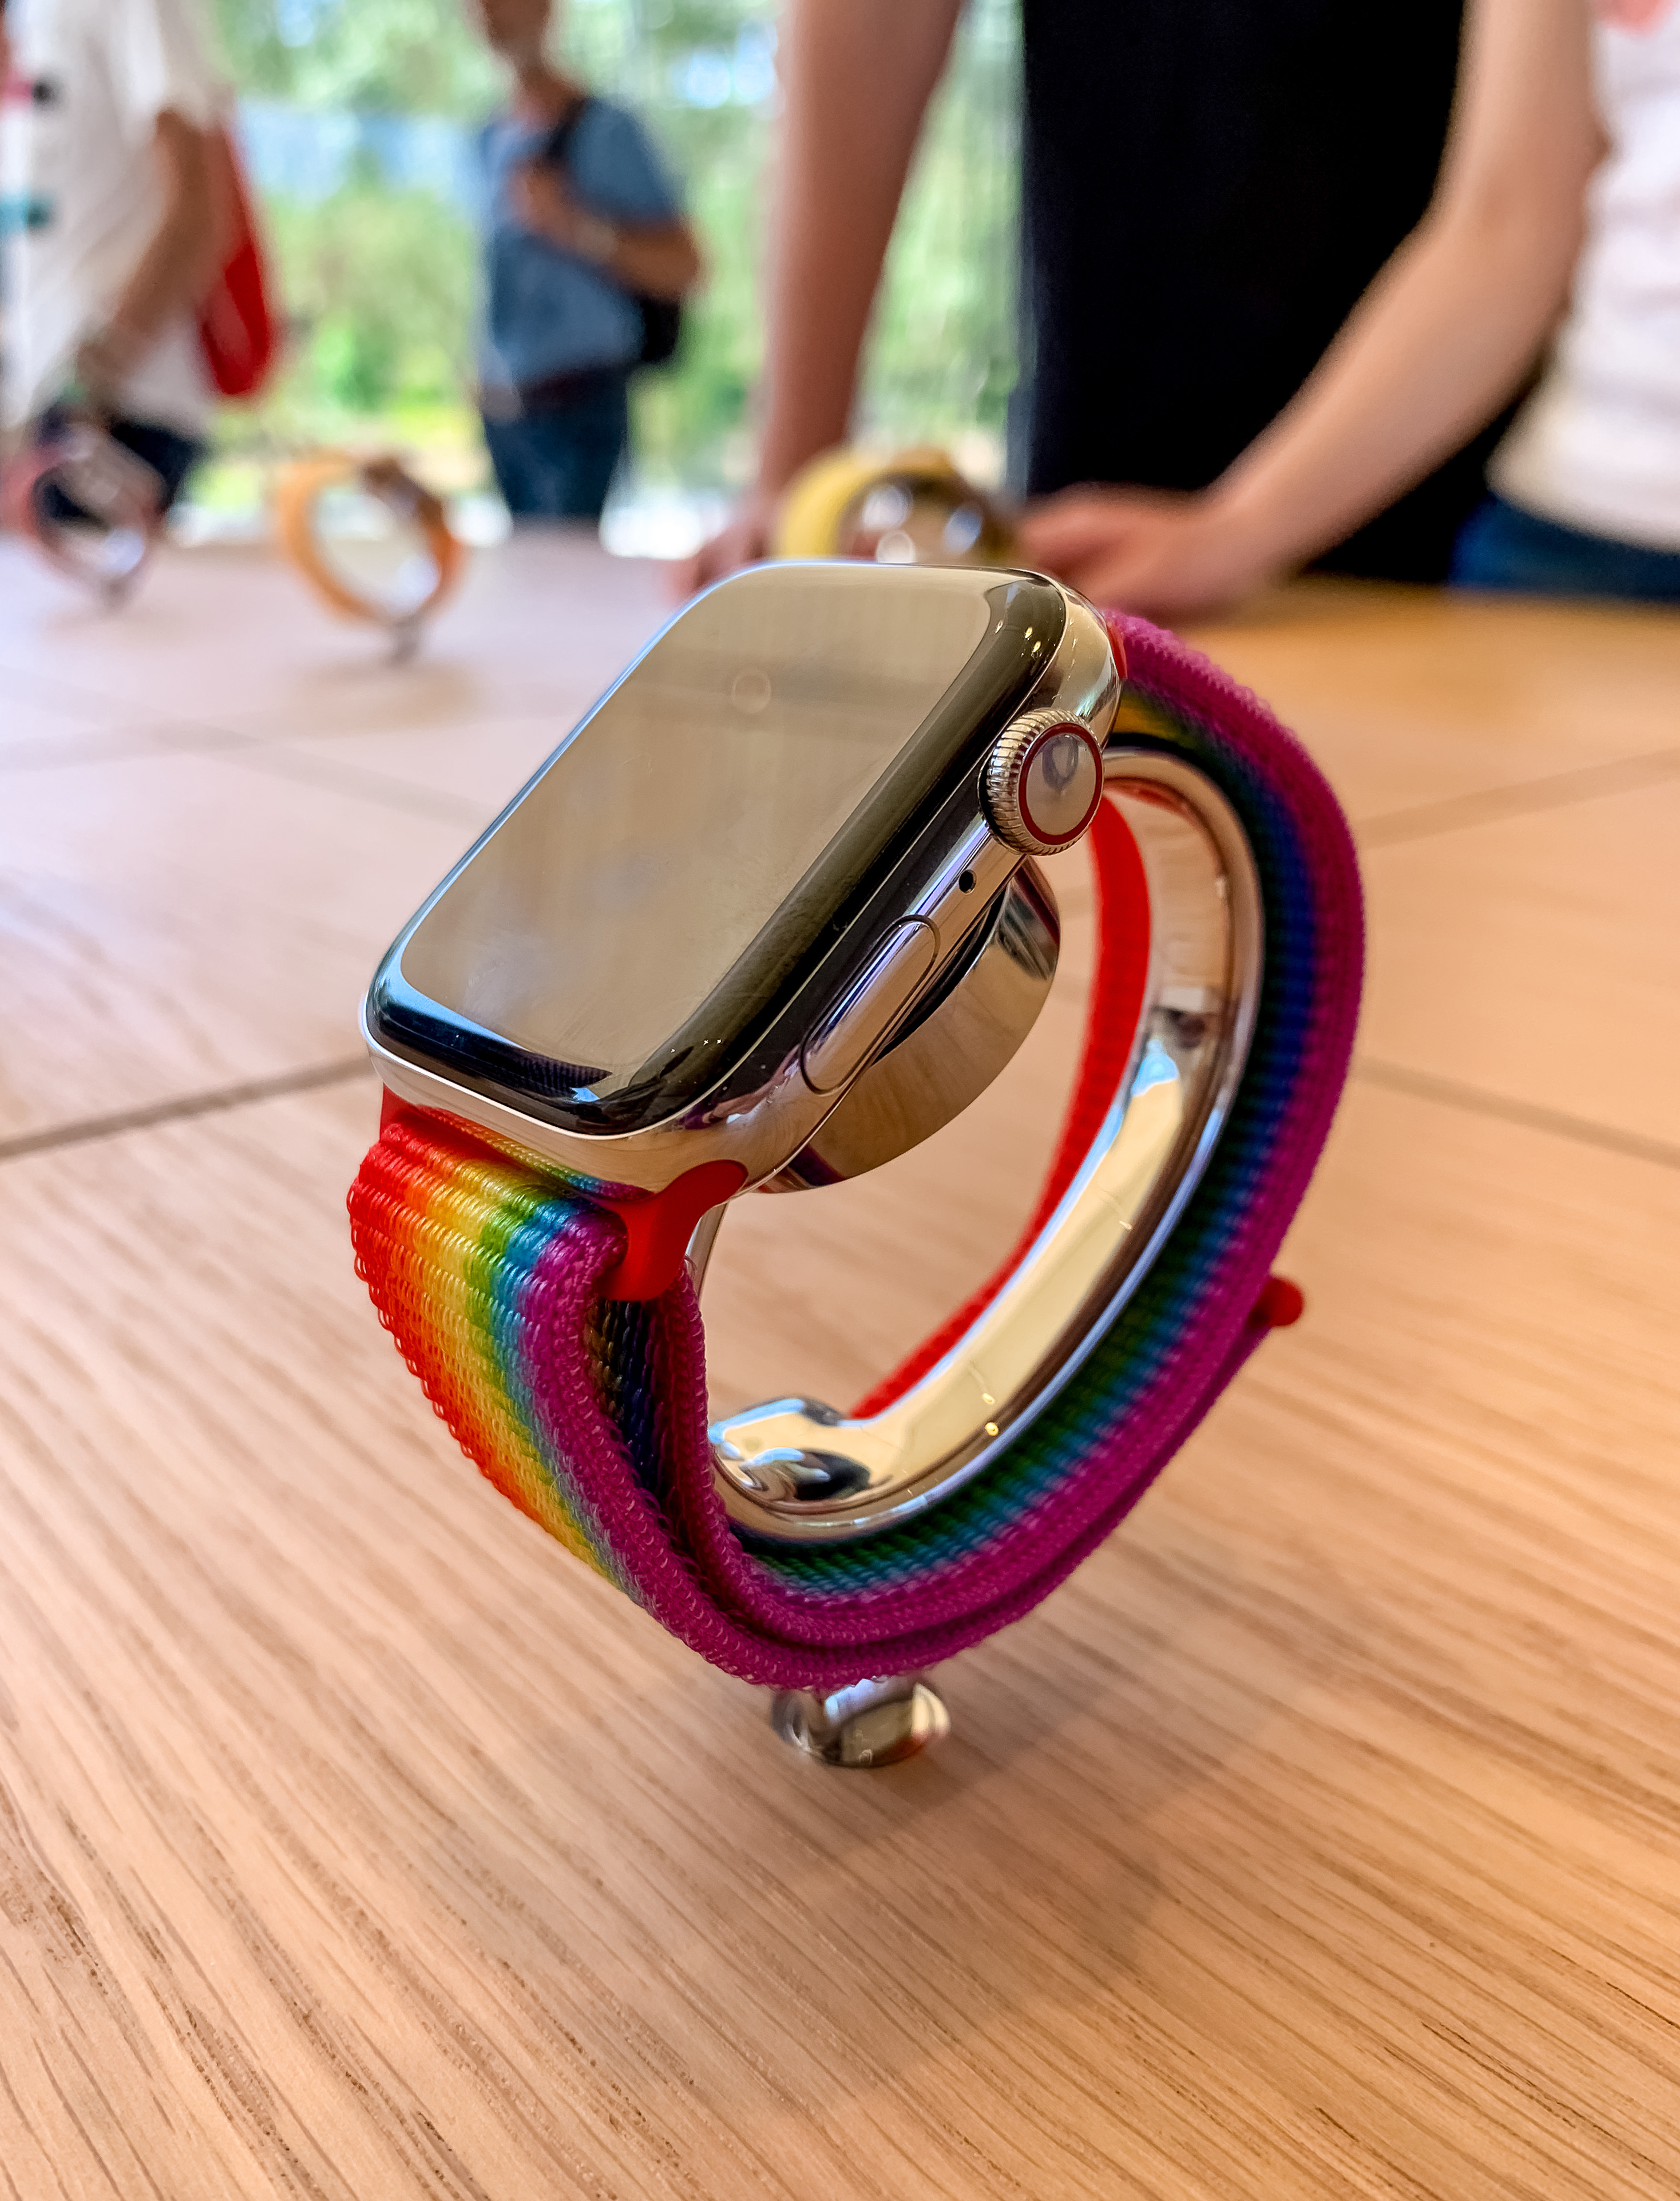 Apple Watch Pride Display